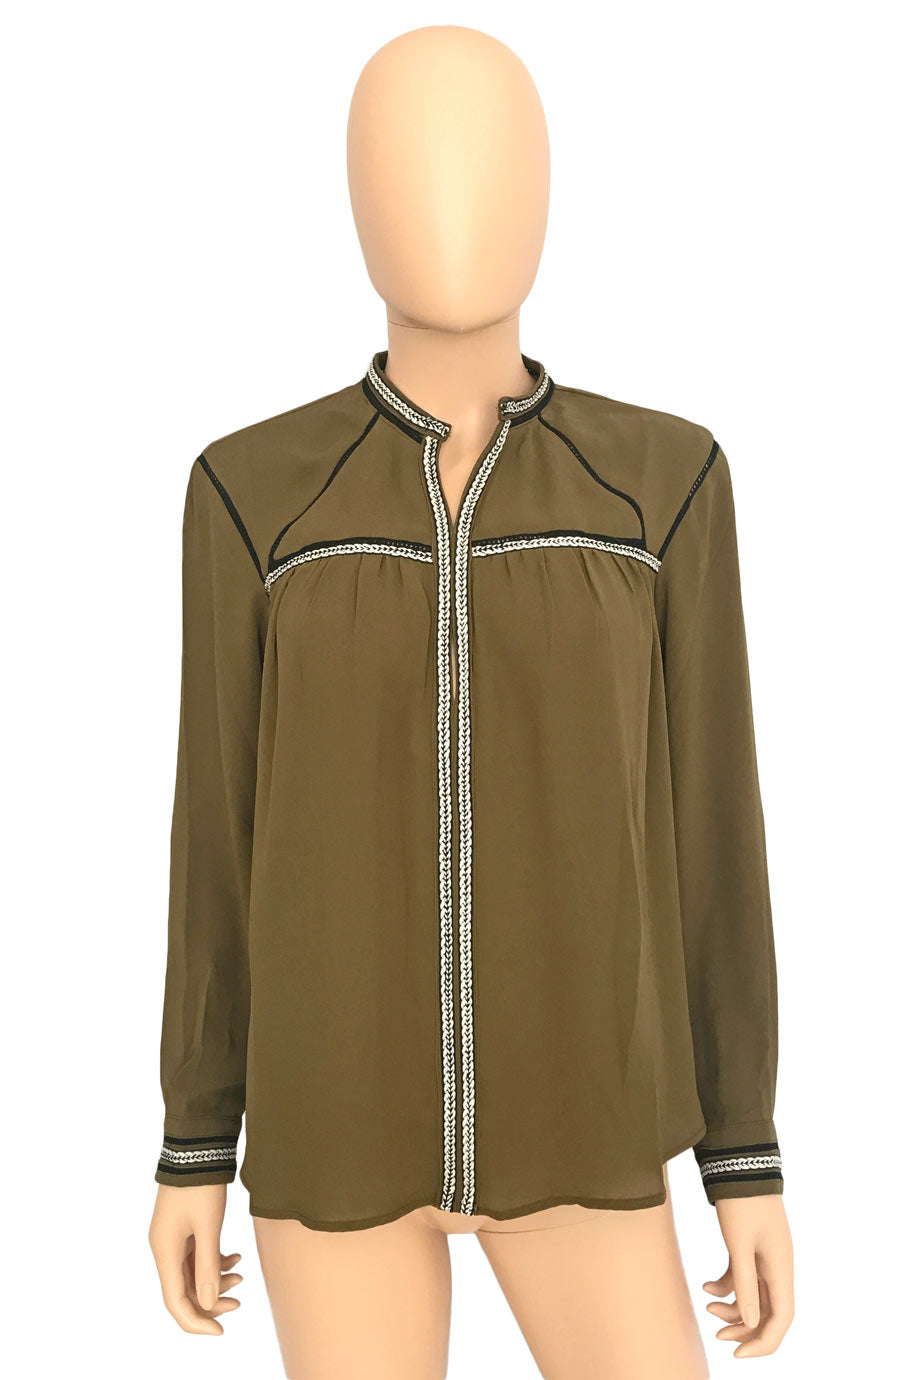 Greylin Olive Green Long Sleeve Blouse + Braided Trim / Sz XS-Style Therapy